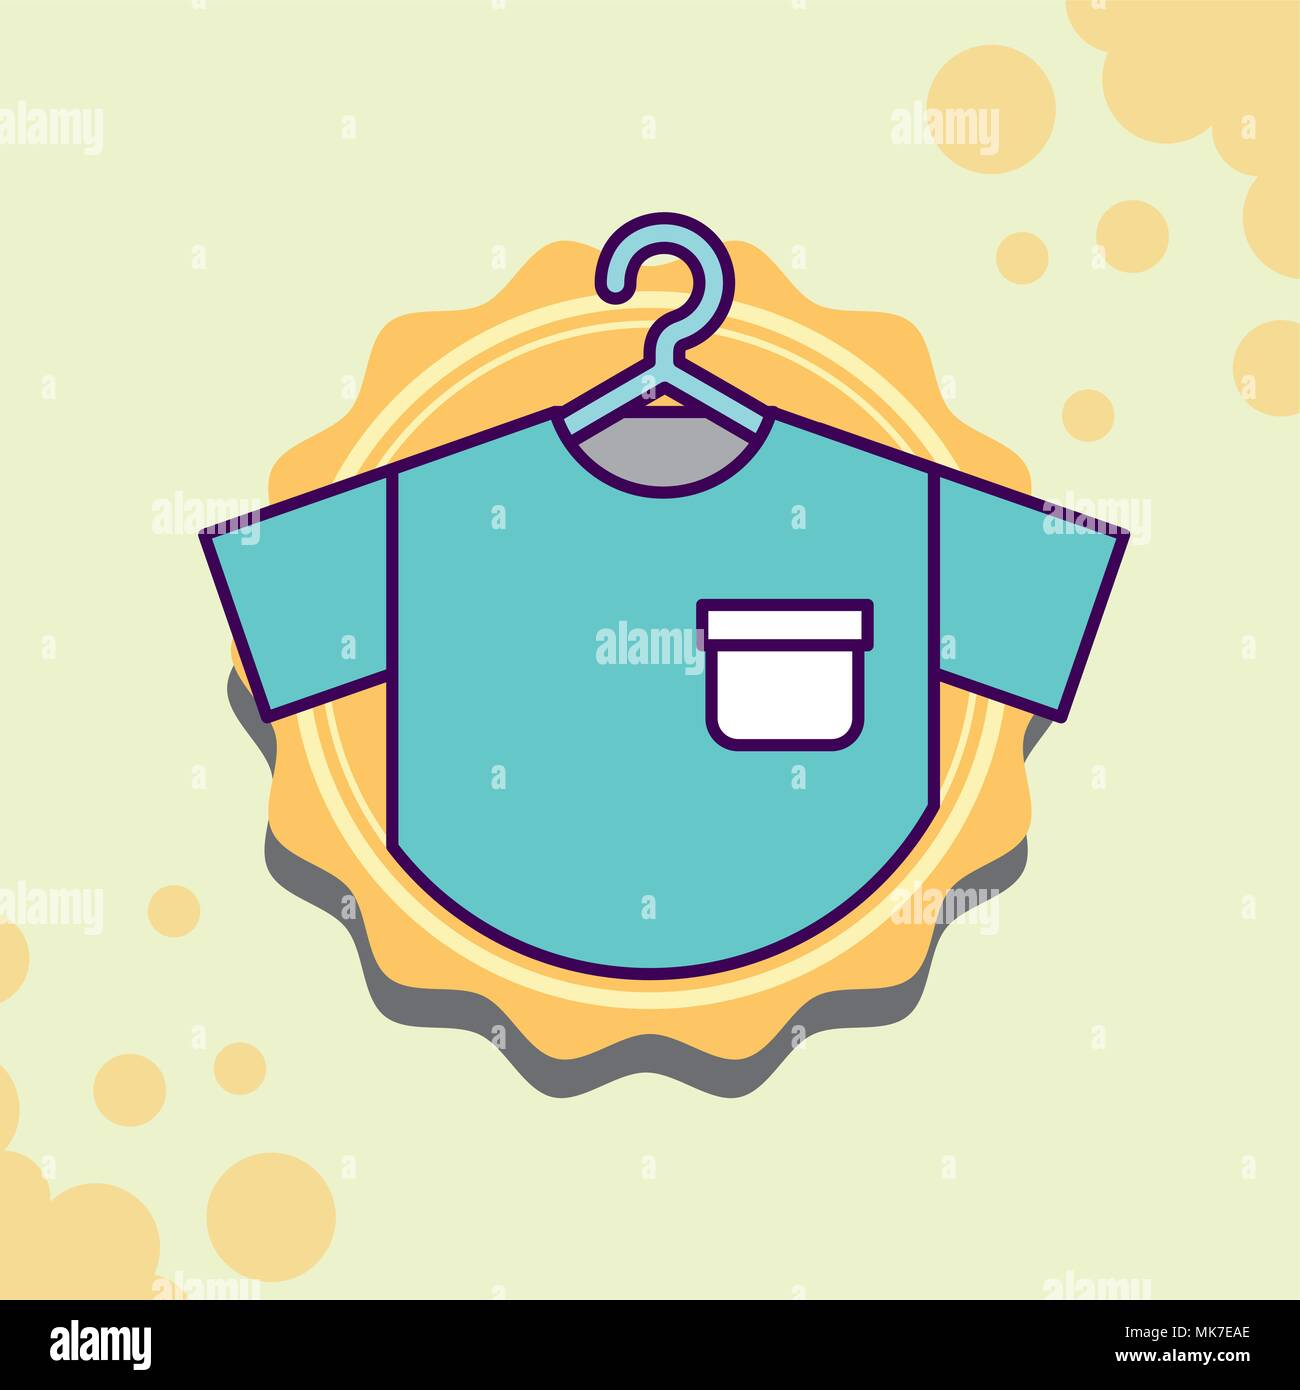 Dry Cleaning Hanger Stock Photos & Dry Cleaning Hanger Stock Images ...